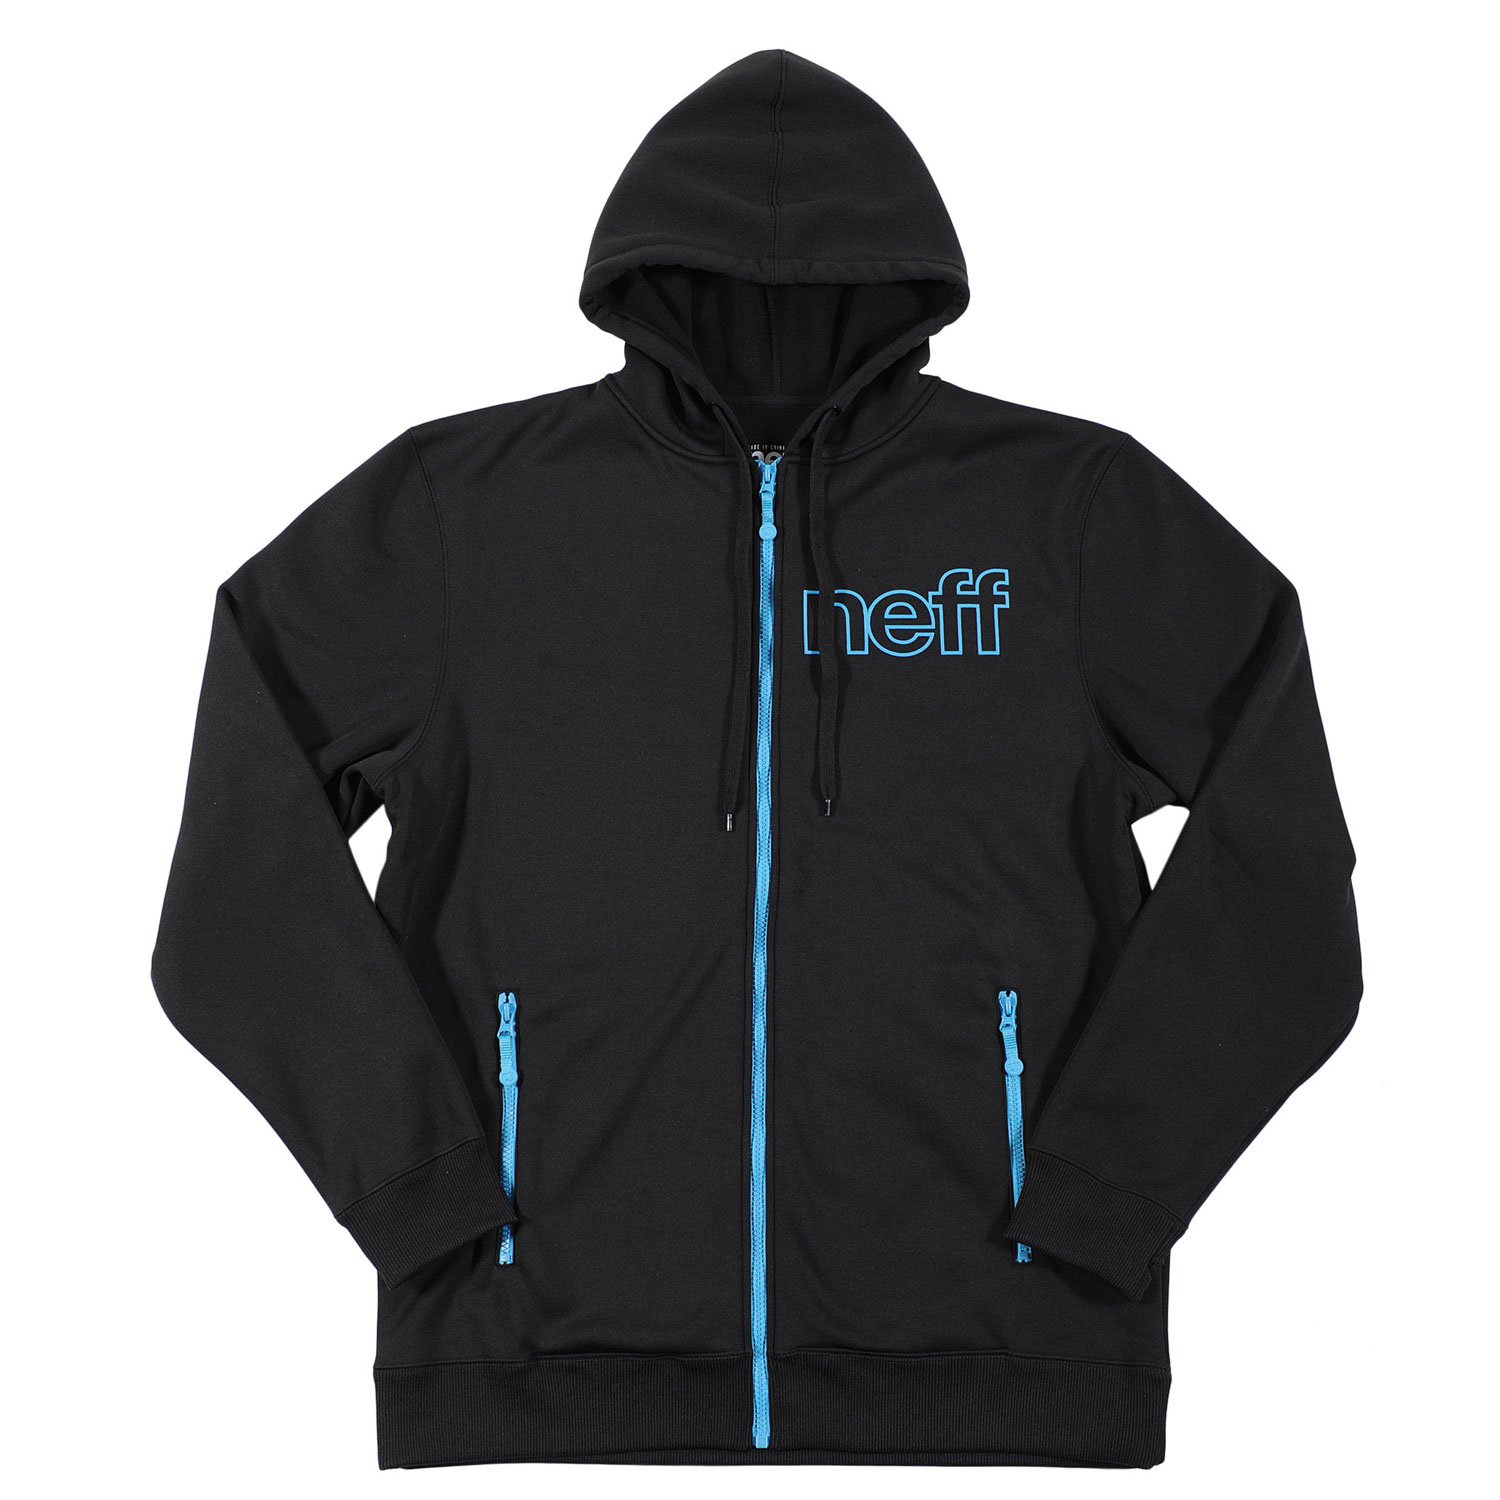 Skateboard Key Features of the Neff Daily Shred Hoodie: 100% Poly Bonded Fleece - $49.95